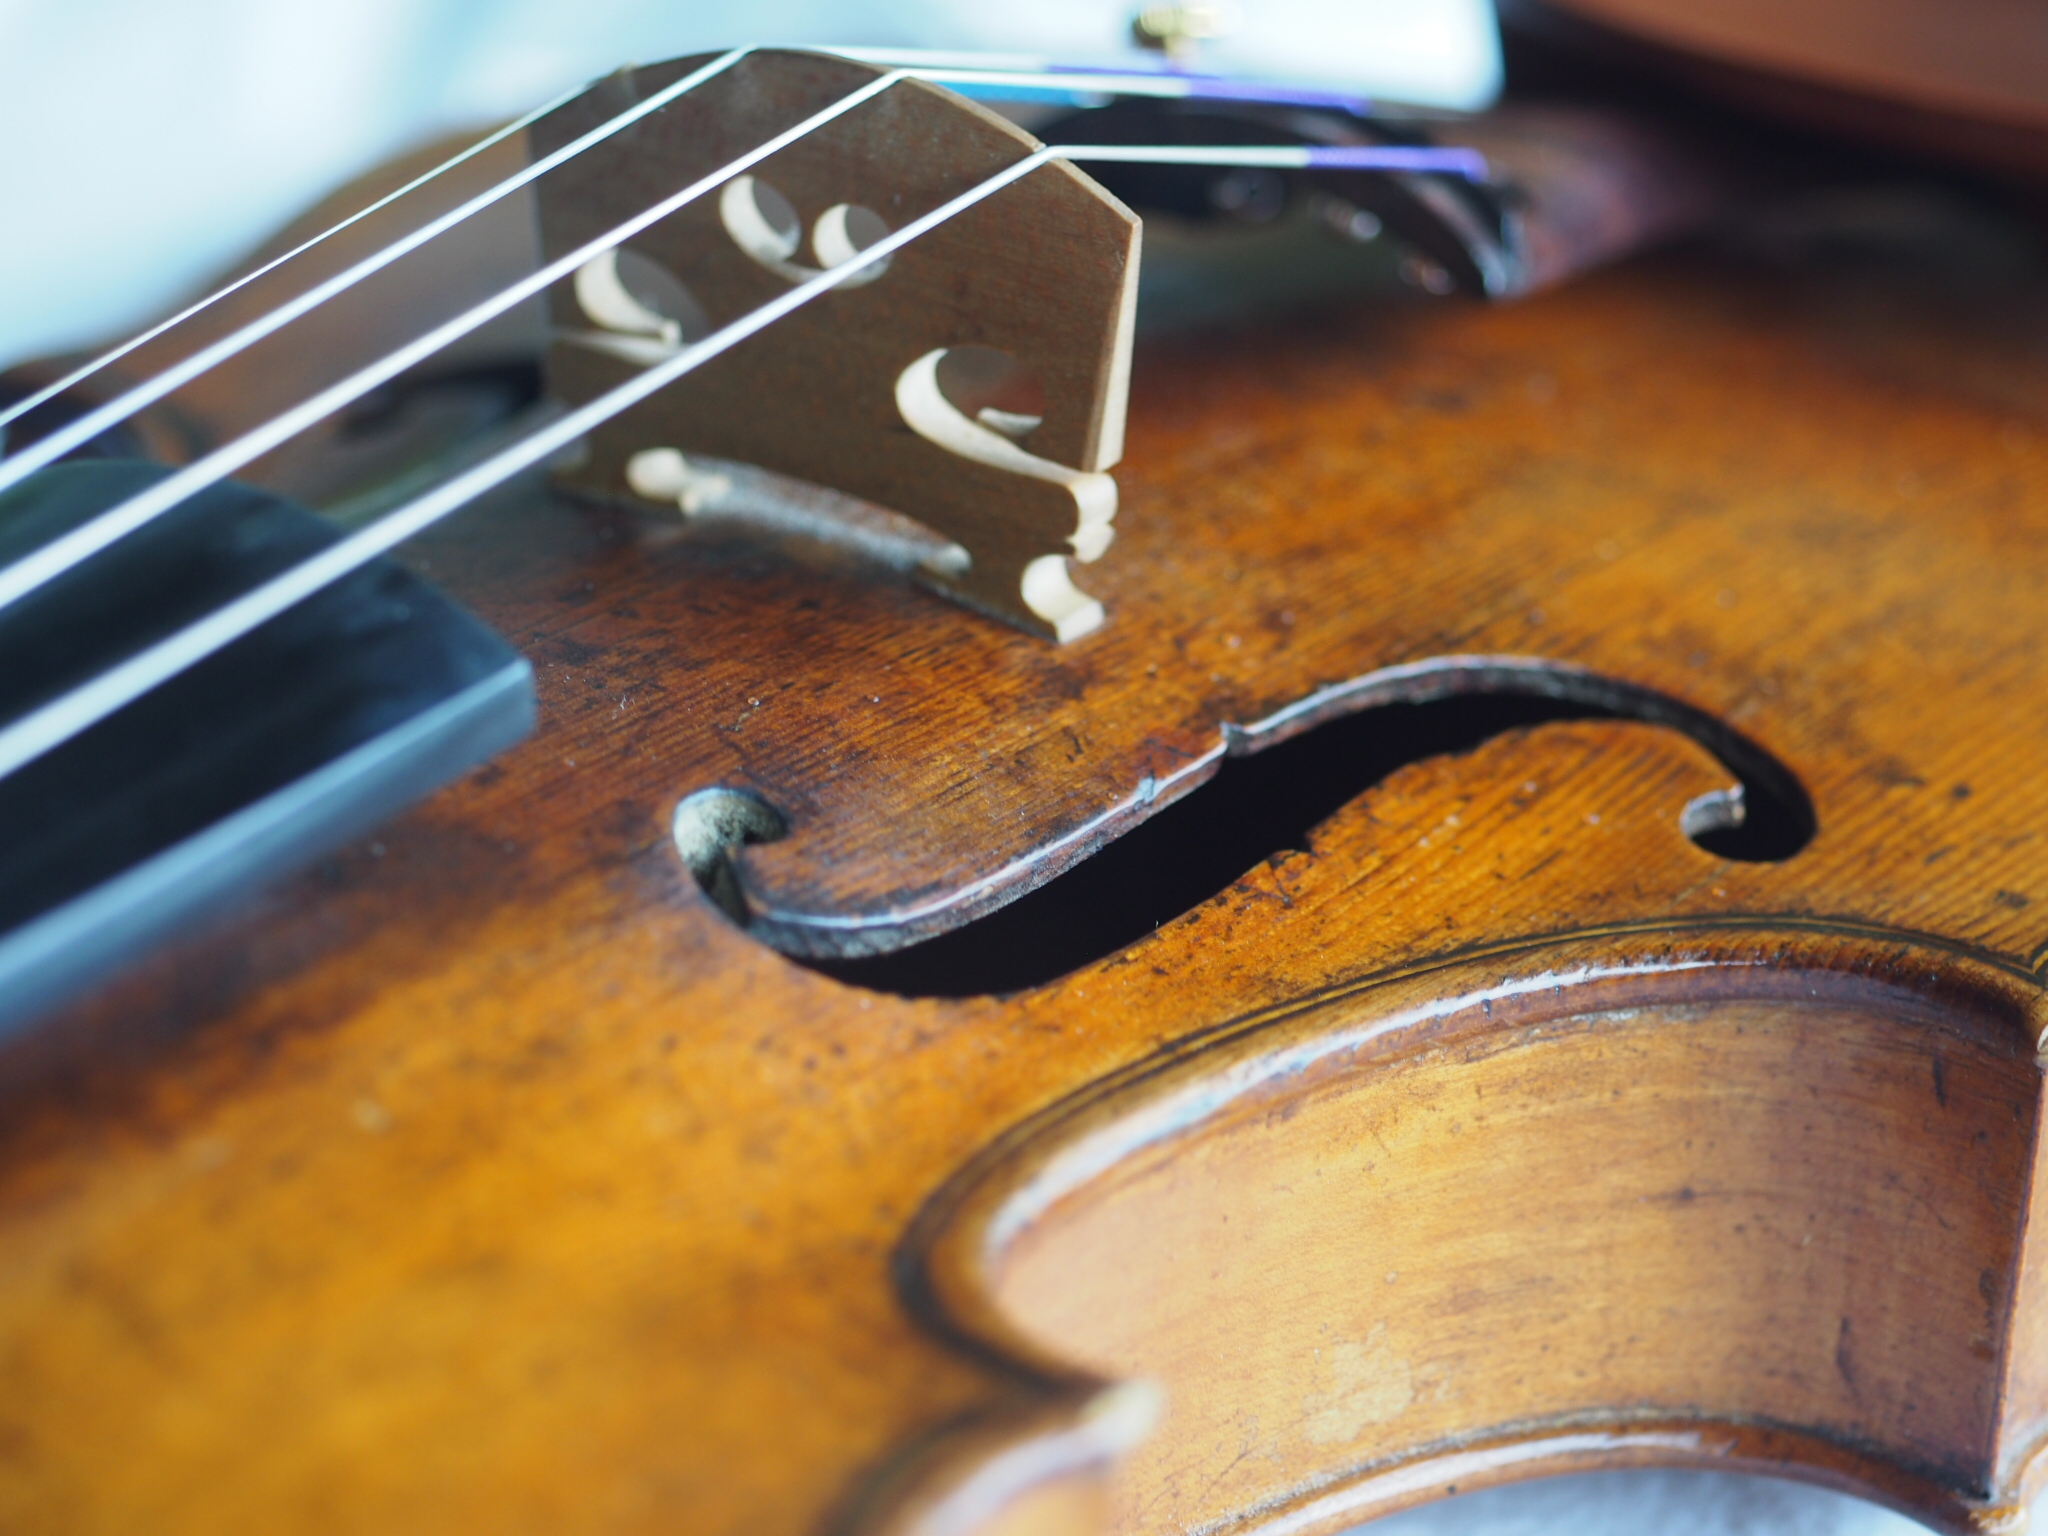 Have a question? - Ask Morganne about violin lessons or performances!